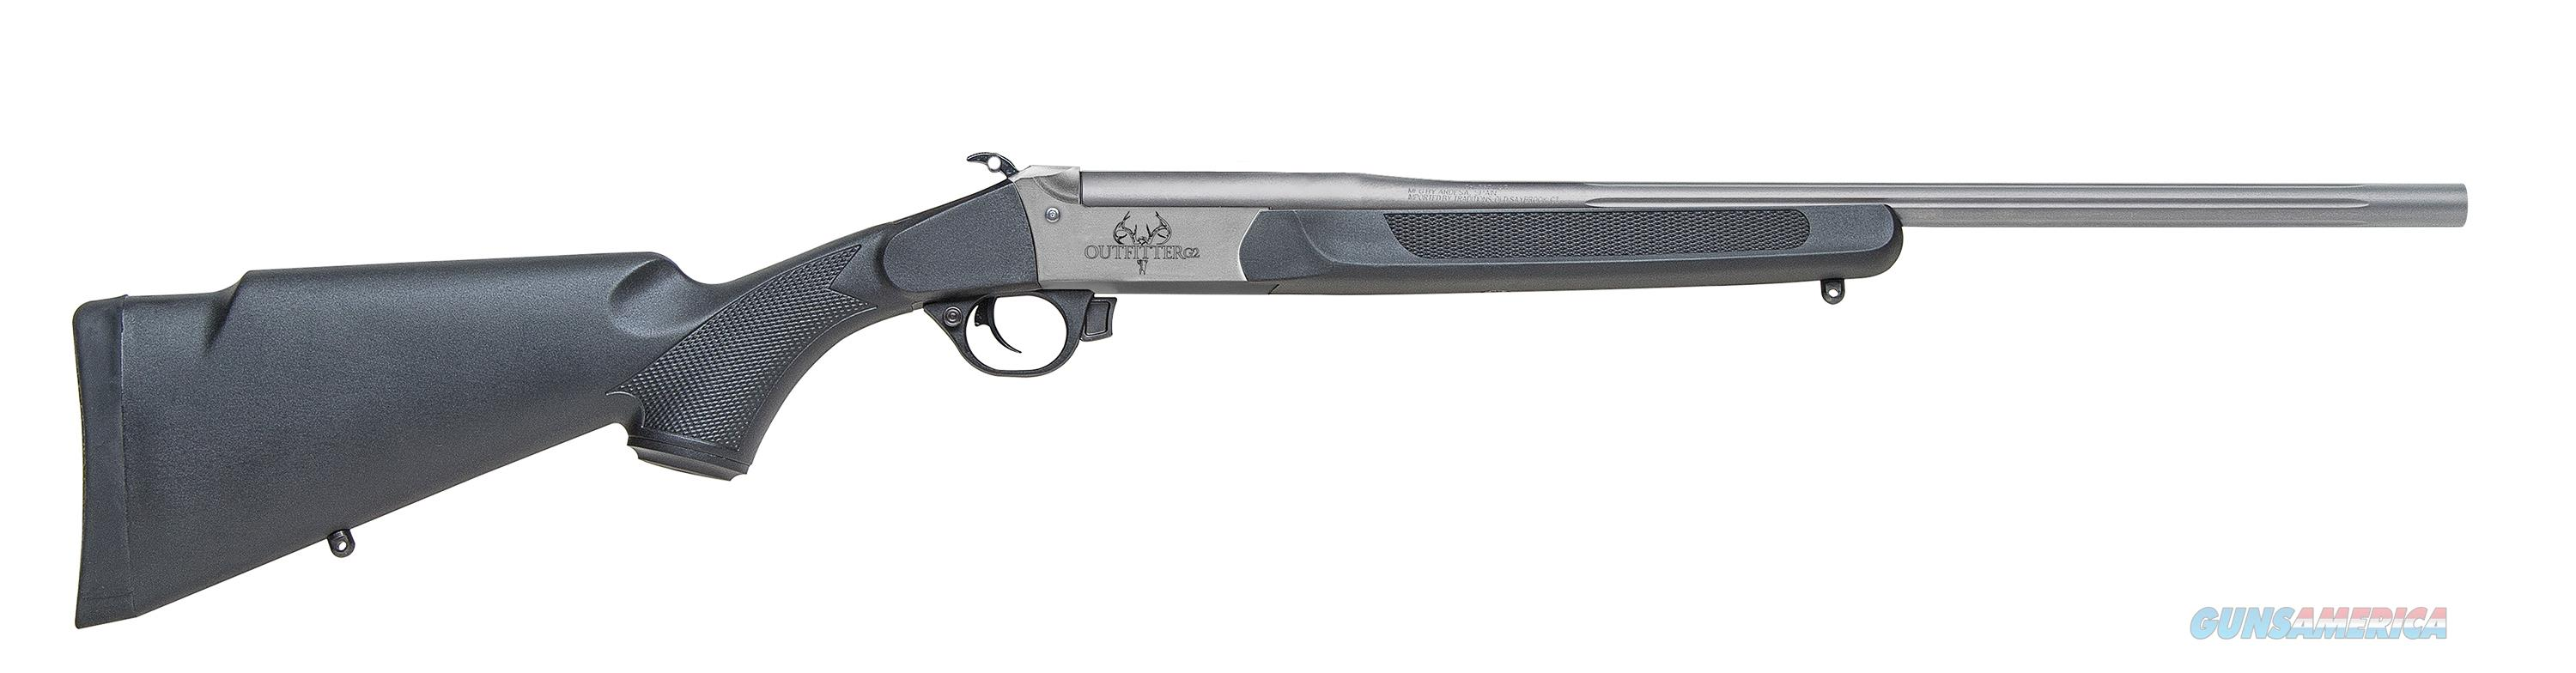 """Traditions Outfitter G2 Single Shot .44 Magnum 22"""" CR-441120  Guns > Rifles > Traditions Rifles"""